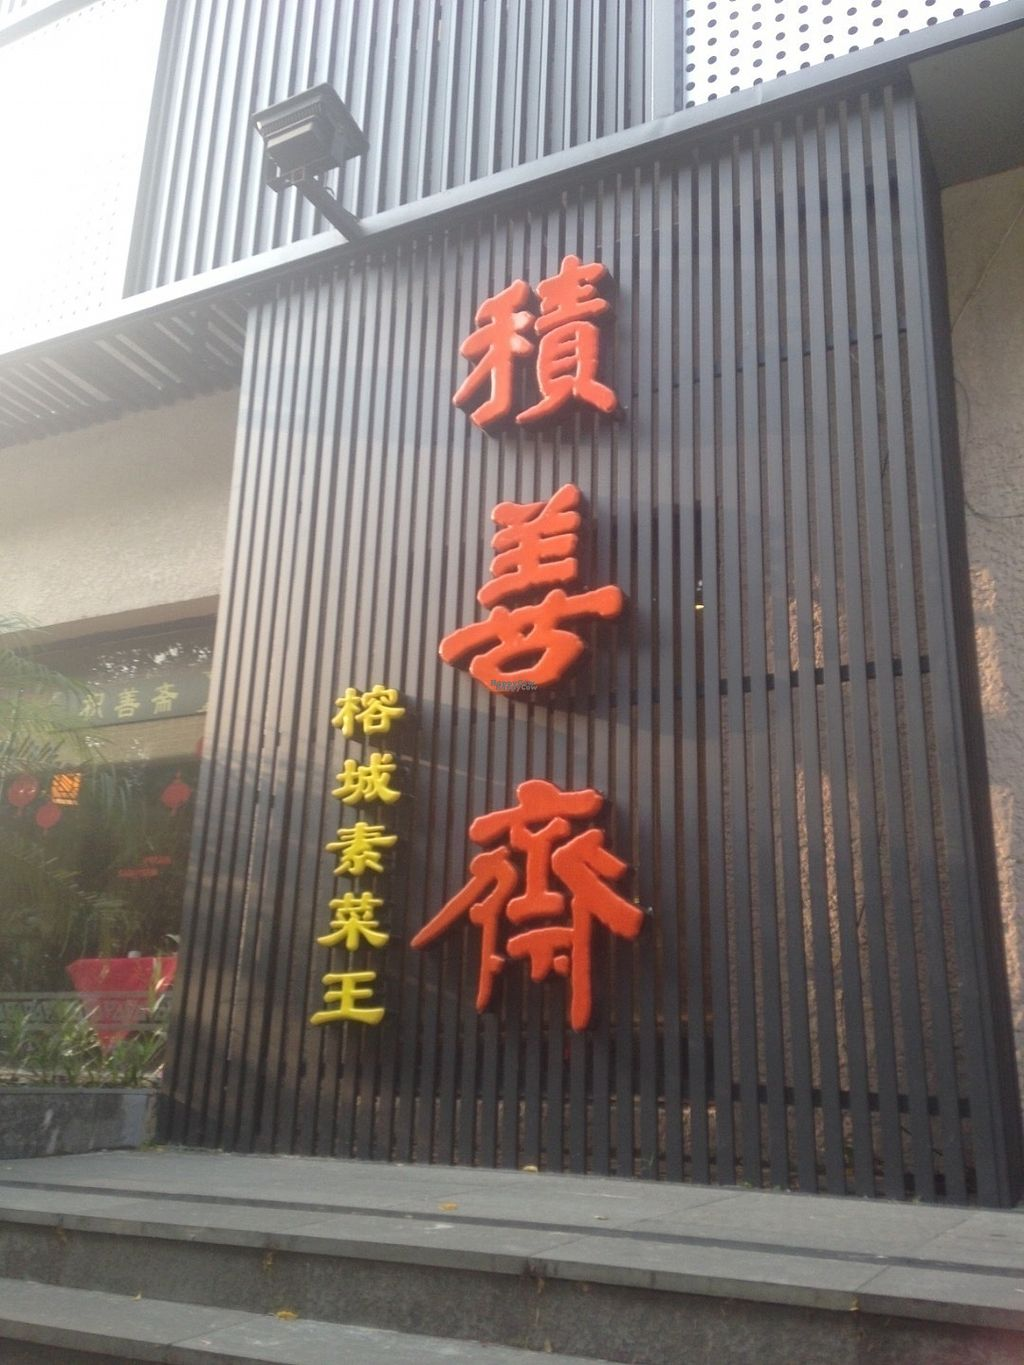 """Photo of REMOVED: Ji Shan Zhai  by <a href=""""/members/profile/Tomasi"""">Tomasi</a> <br/>Entry view <br/> October 10, 2016  - <a href='/contact/abuse/image/42088/181103'>Report</a>"""